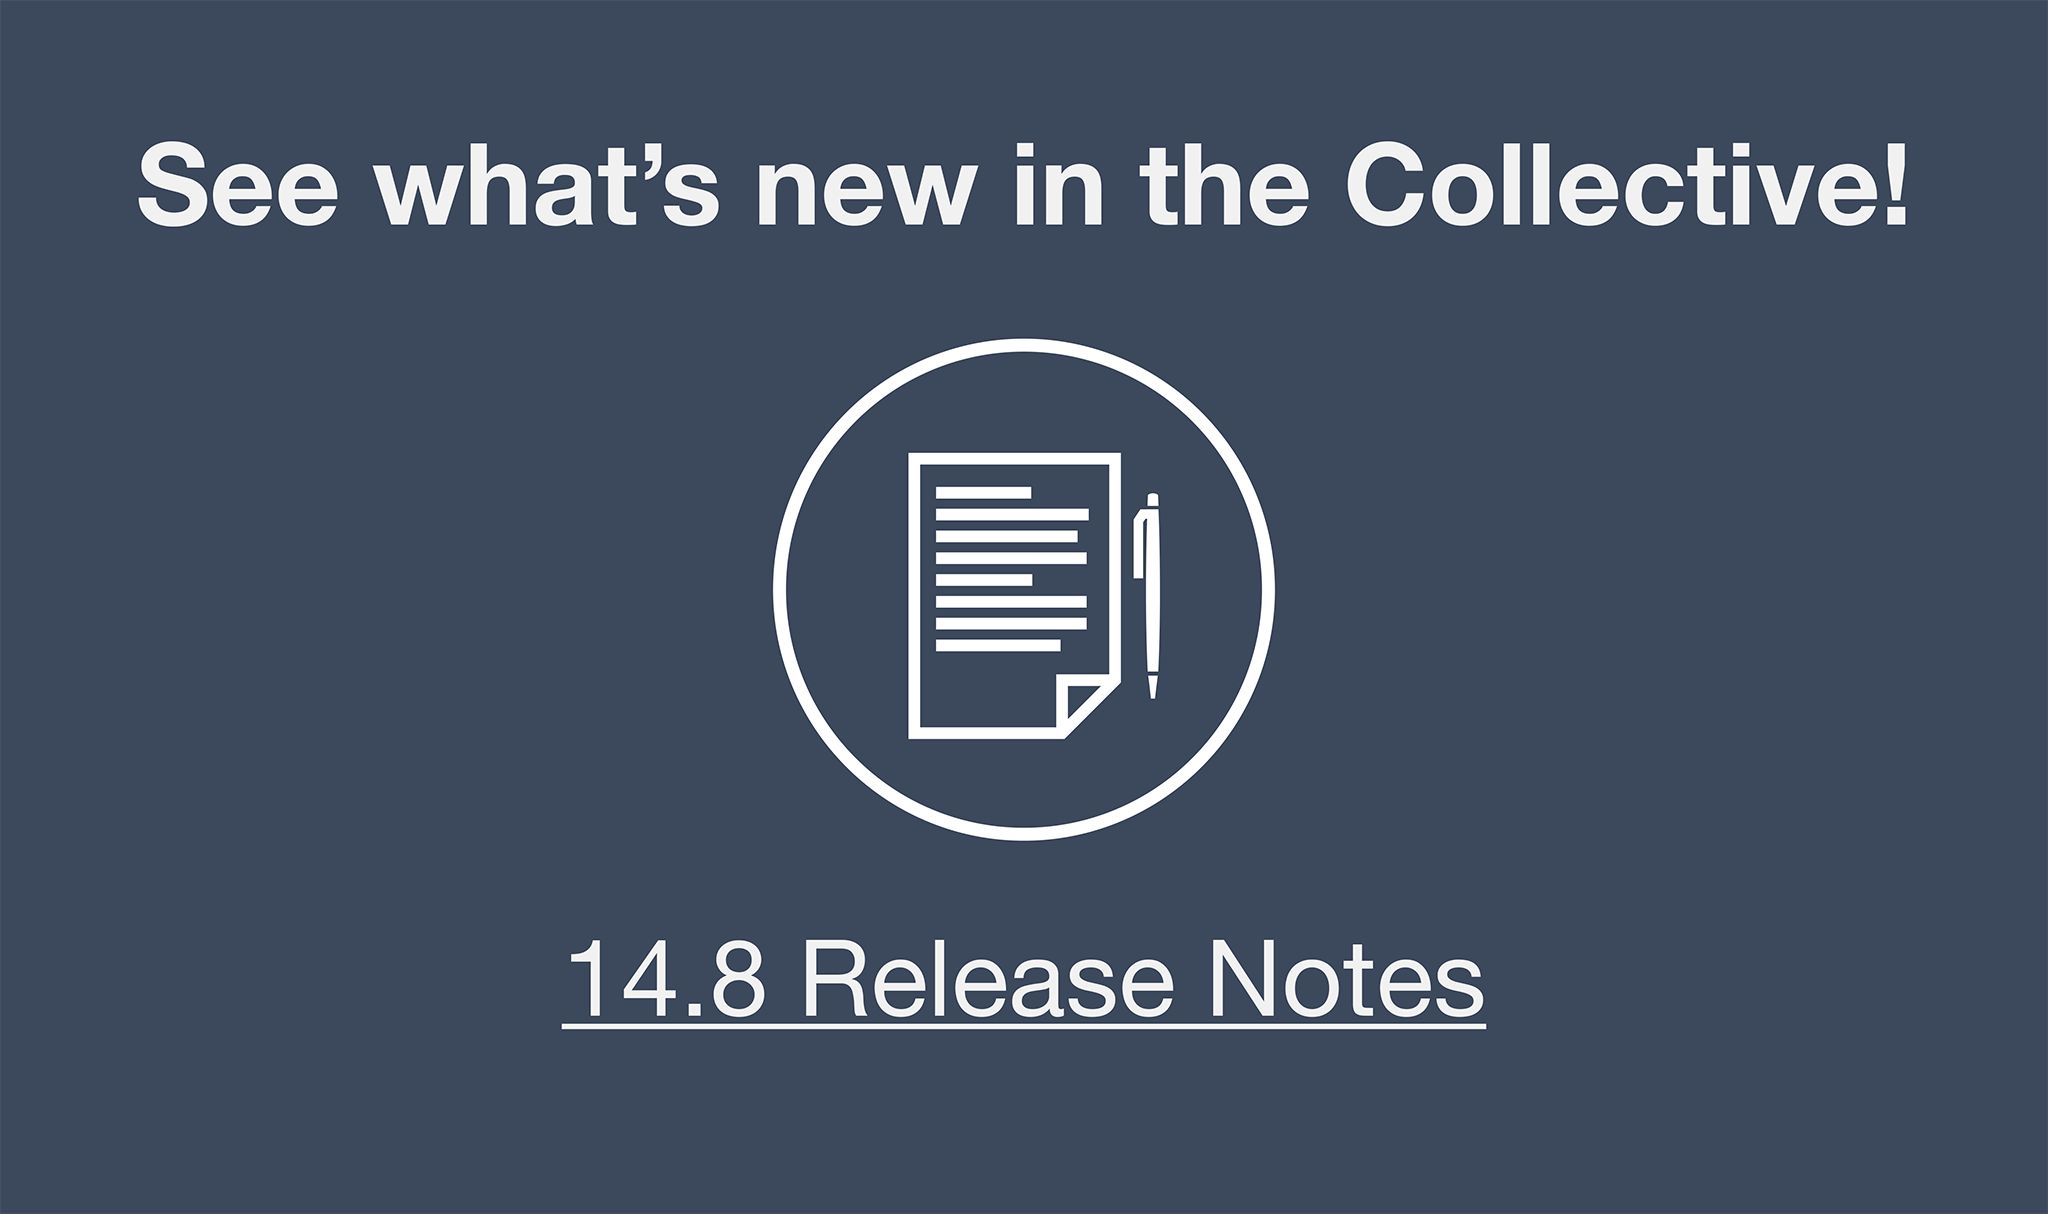 View the 13.1 Widen Collective Release notes to see what's new.